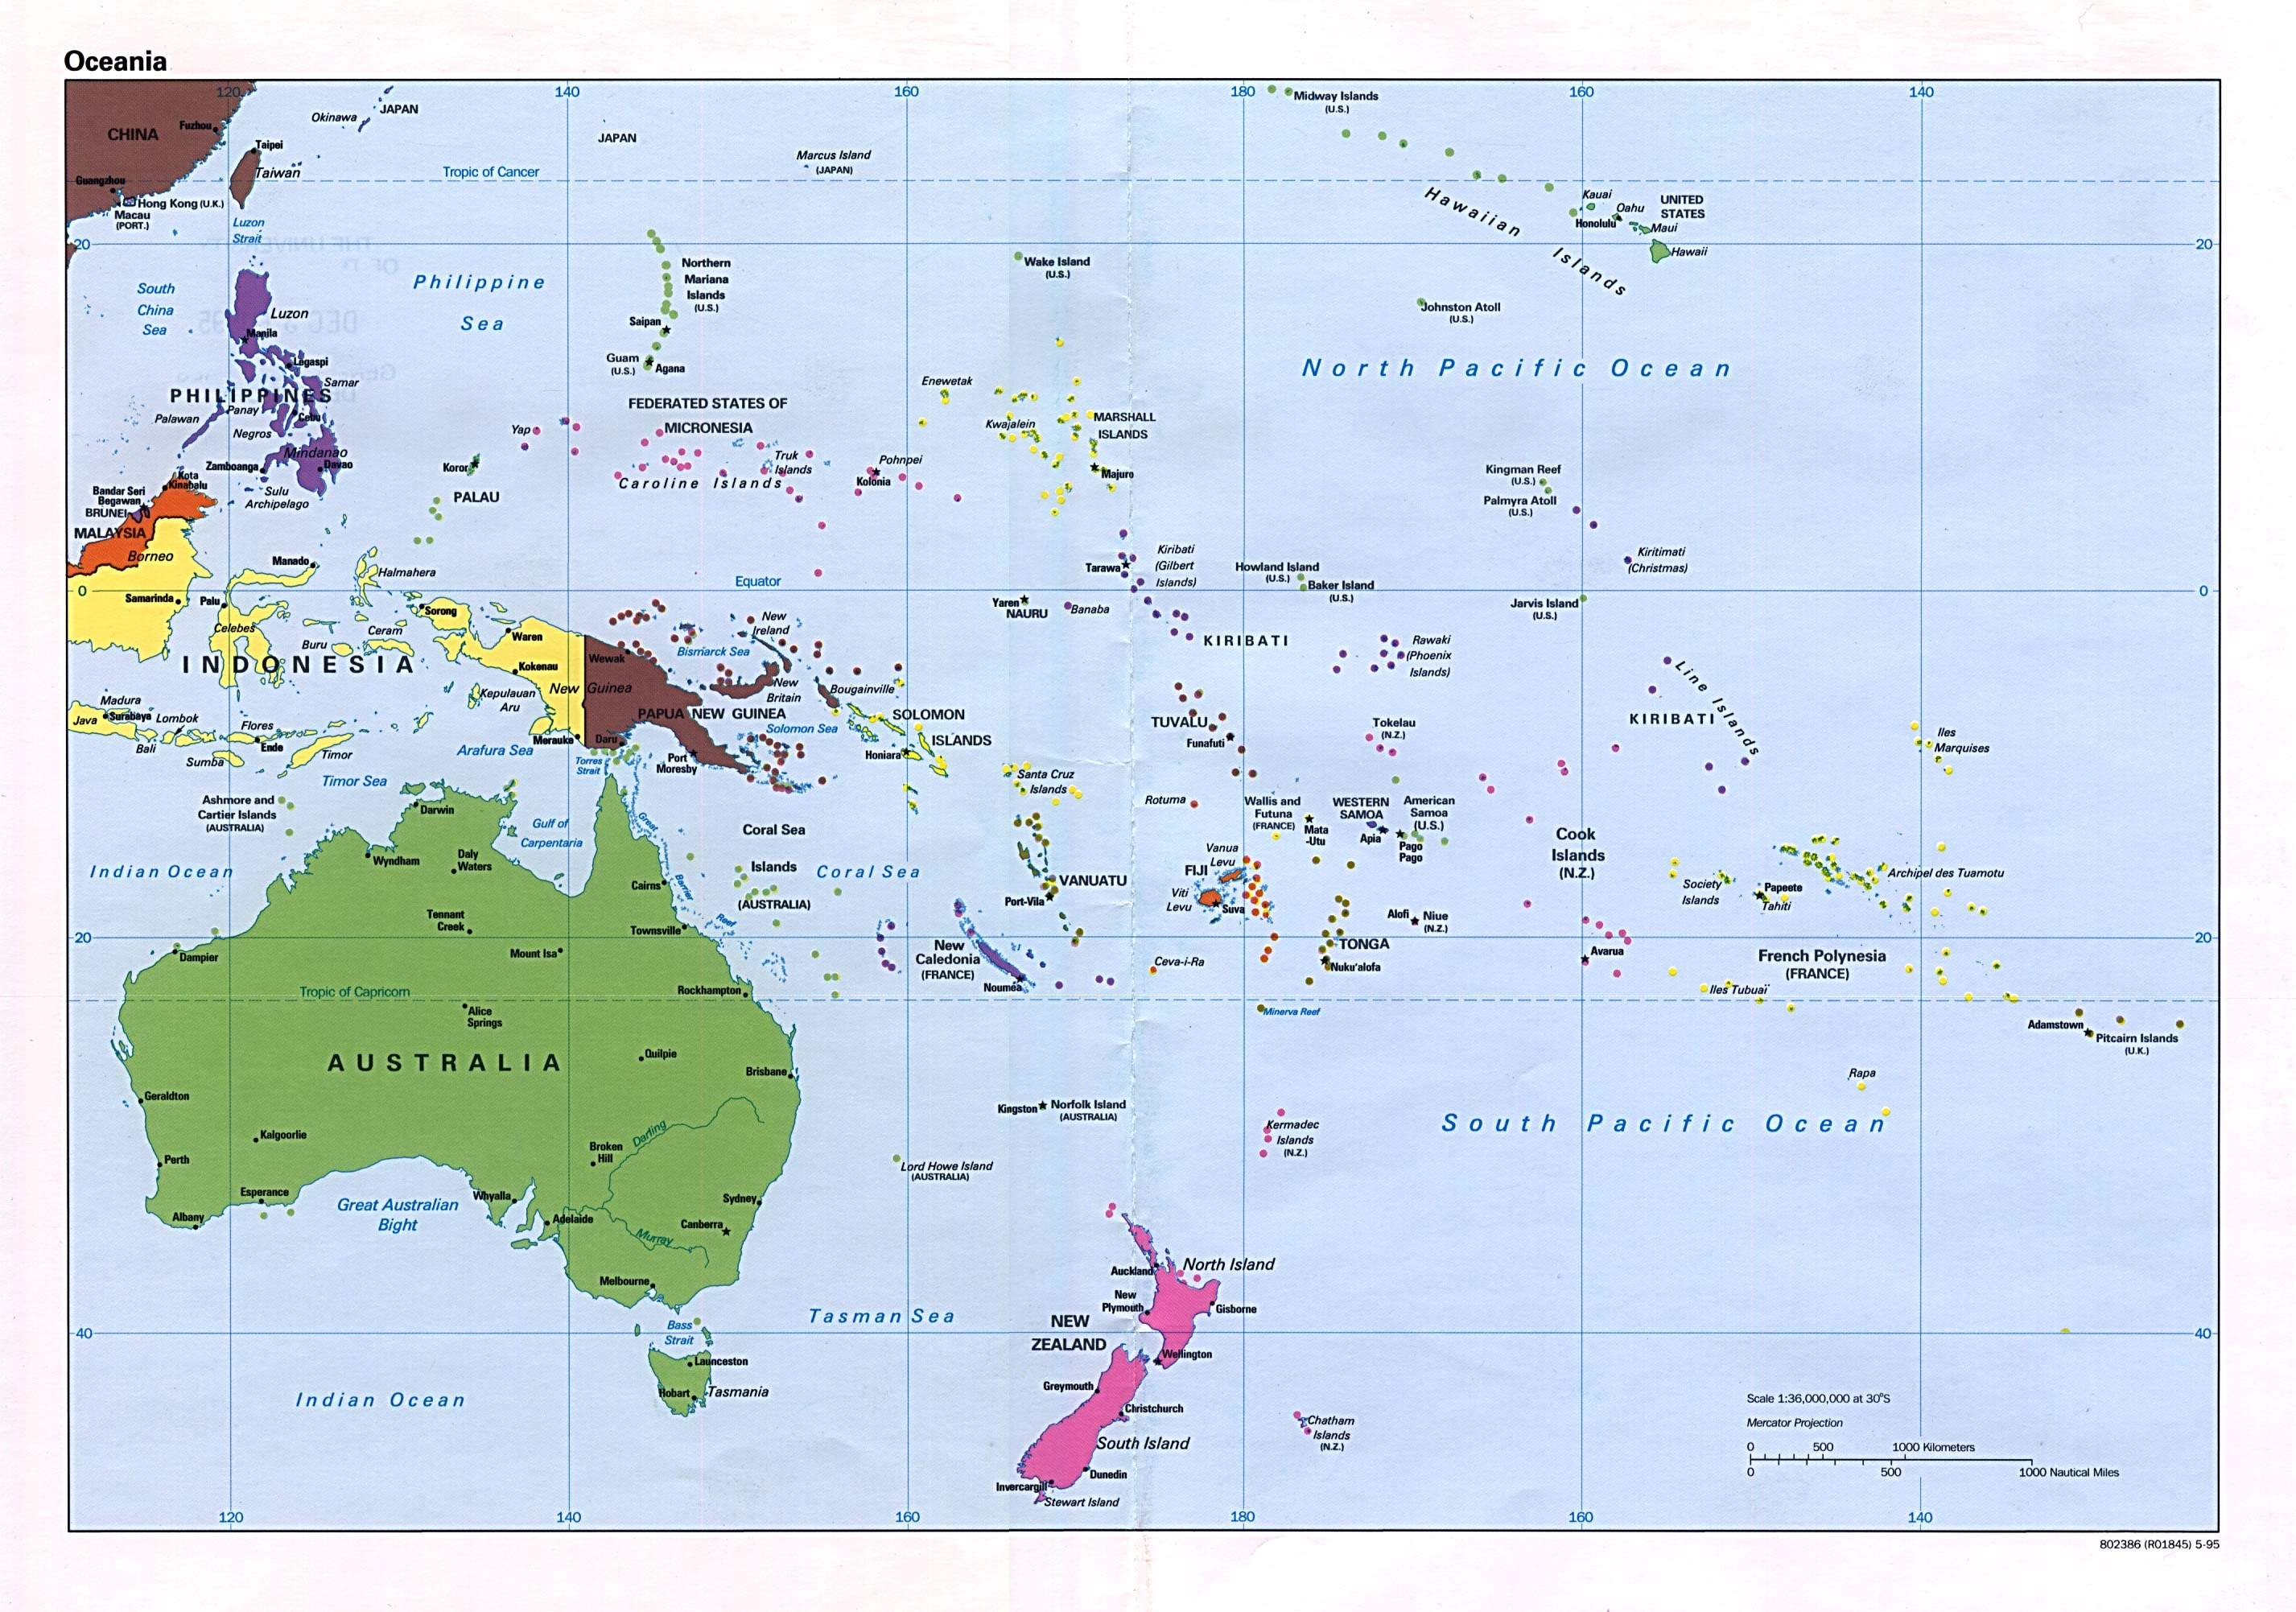 Oceania political map 1995